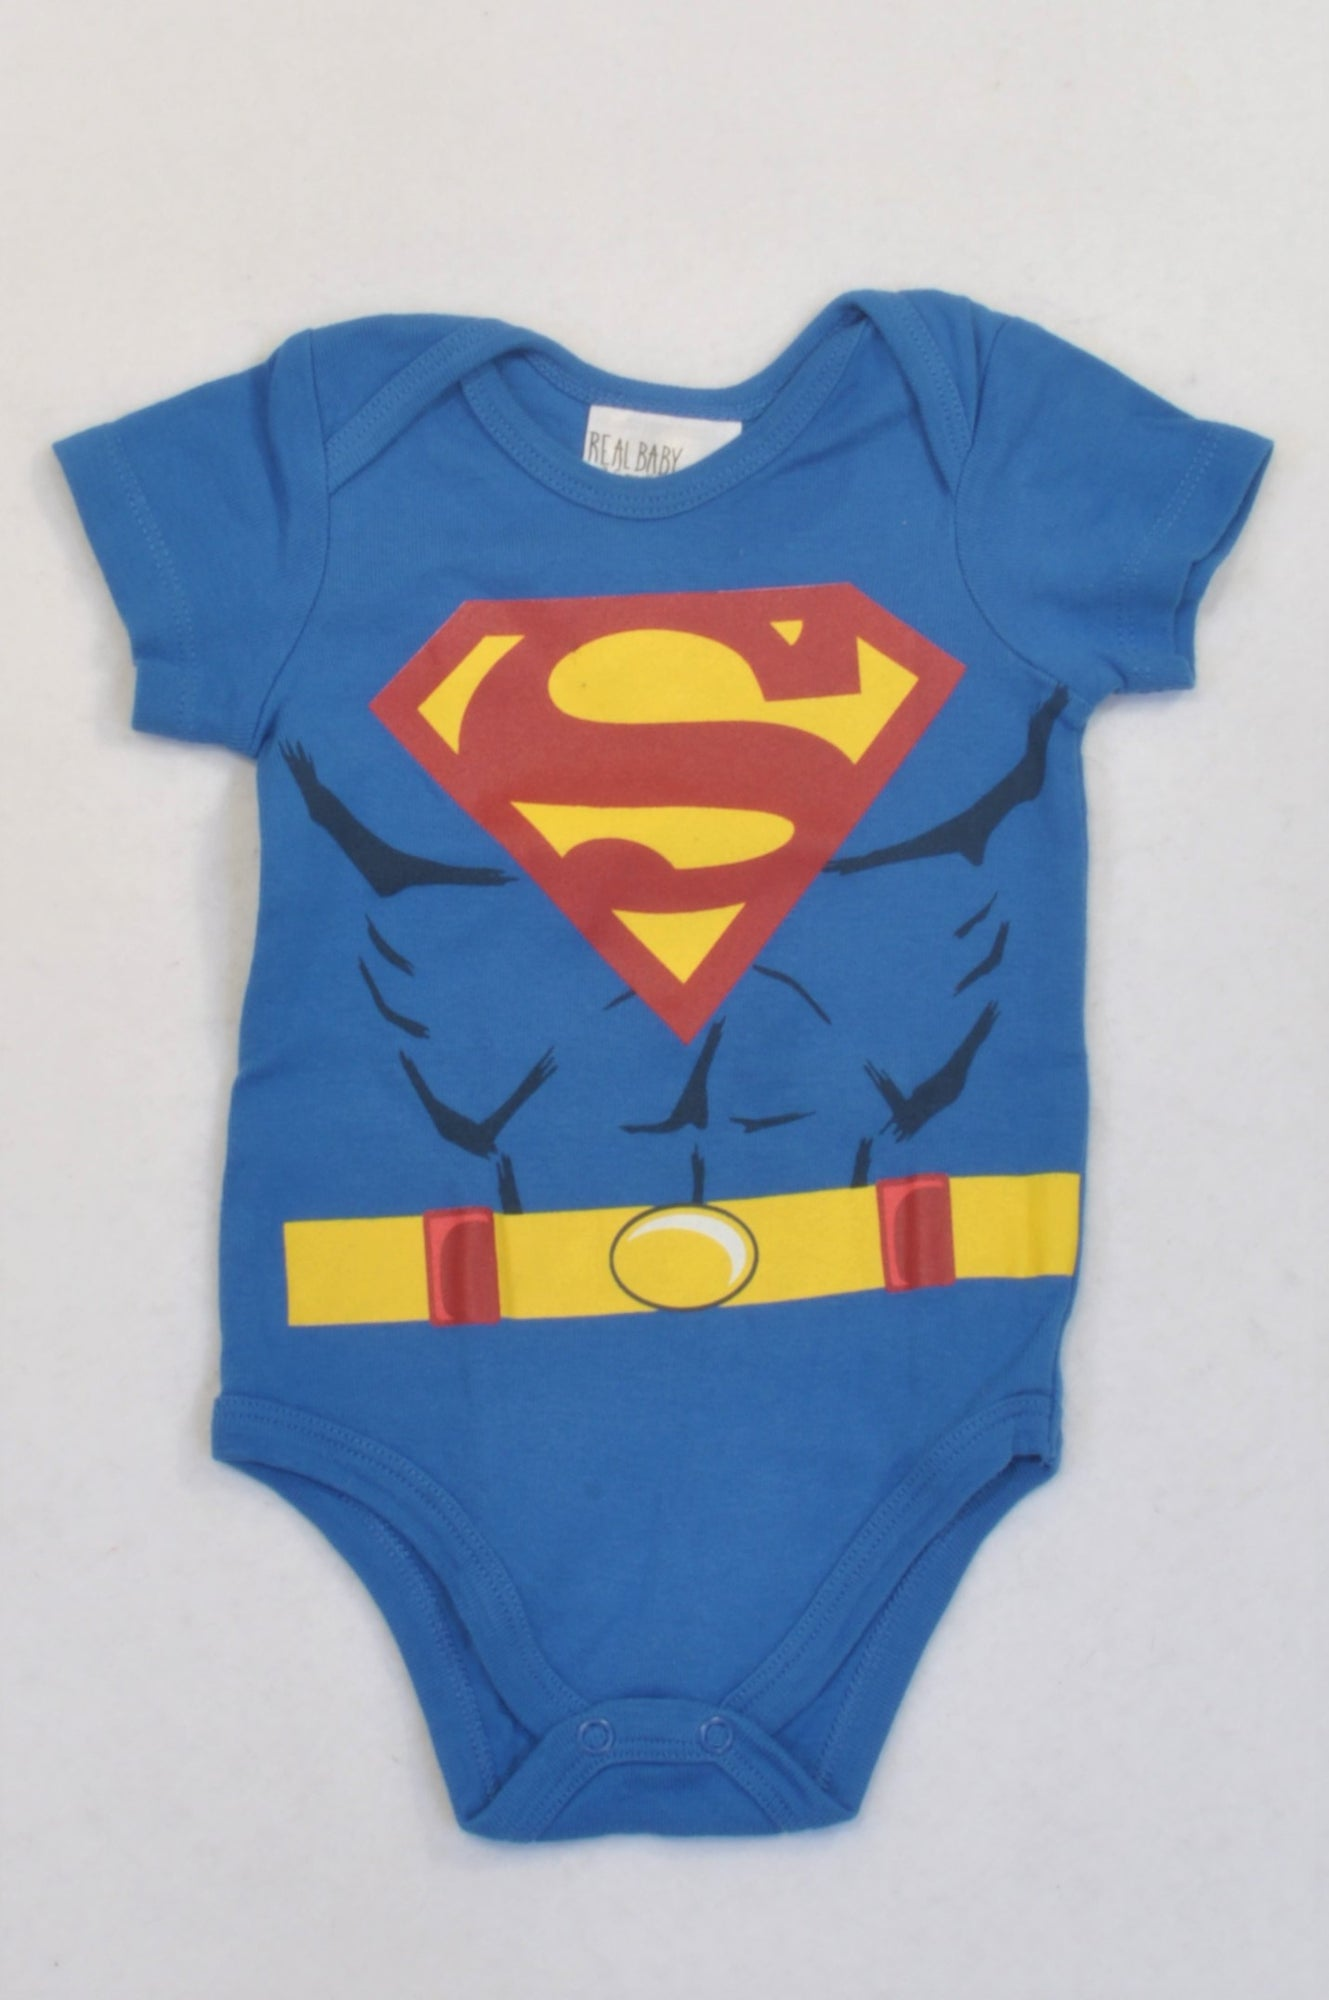 fca38b1d2230 Pick  n Pay Blue Superman Short Sleeved Baby Grow Boys 3-6 months ...